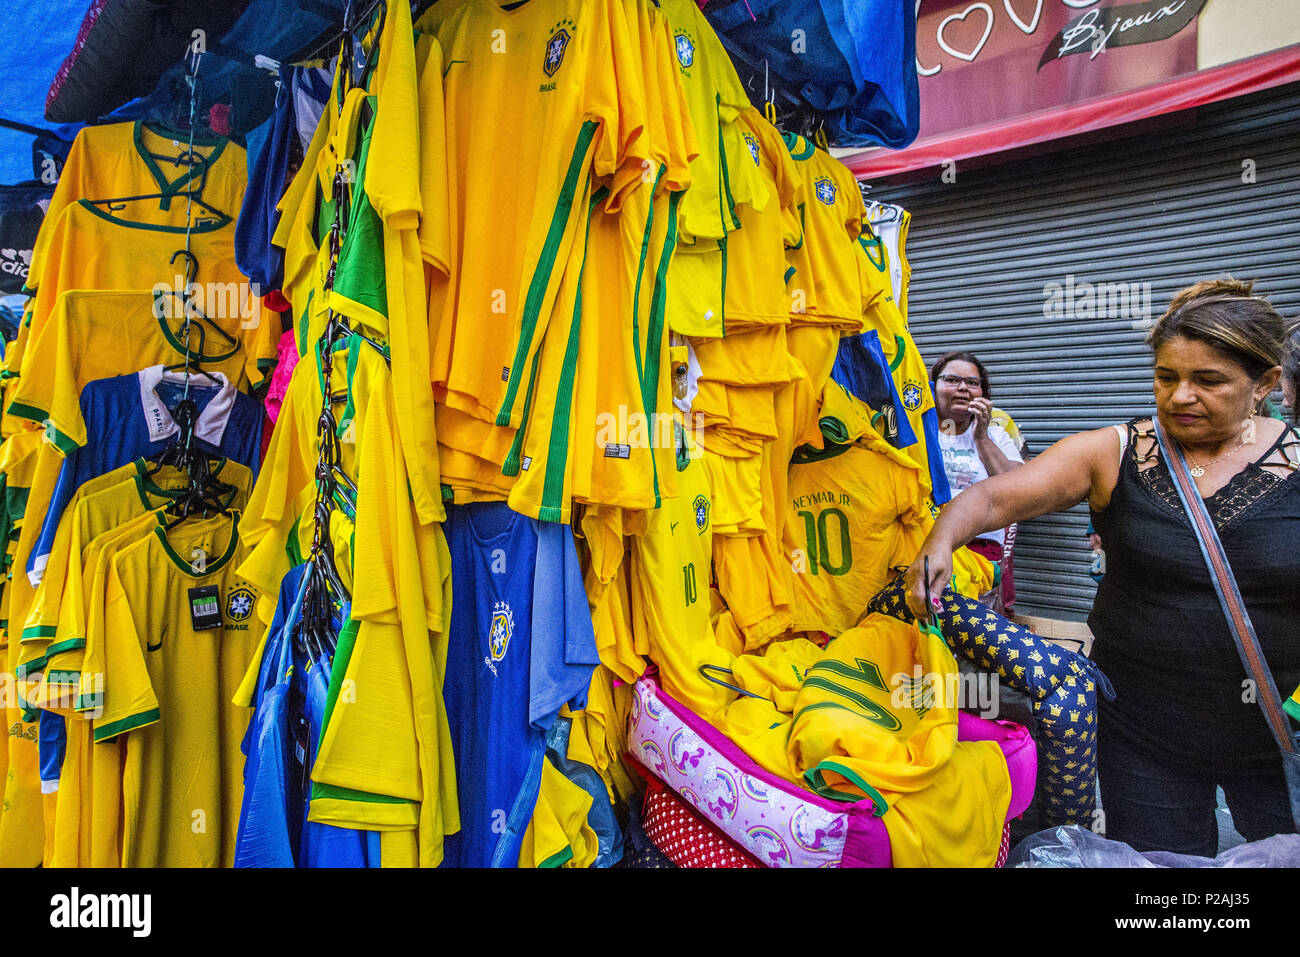 Sao Paulo, Brazil. 14th June, 2018. Shoppers pass on a street decorated in Brazilian flags ahead of the FIFA World Cup games in downtown Sao Paulo, Brazil. In a curious quirk of Brazil's electoral calendar, for the last 28 years Latin America's largest economy has gone to the polls shortly after the World Cup. In the football-obsessed country, politicians have long attempted to hijack the sport to burnish their image. Credit: Cris Faga/ZUMA Wire/Alamy Live News - Stock Image